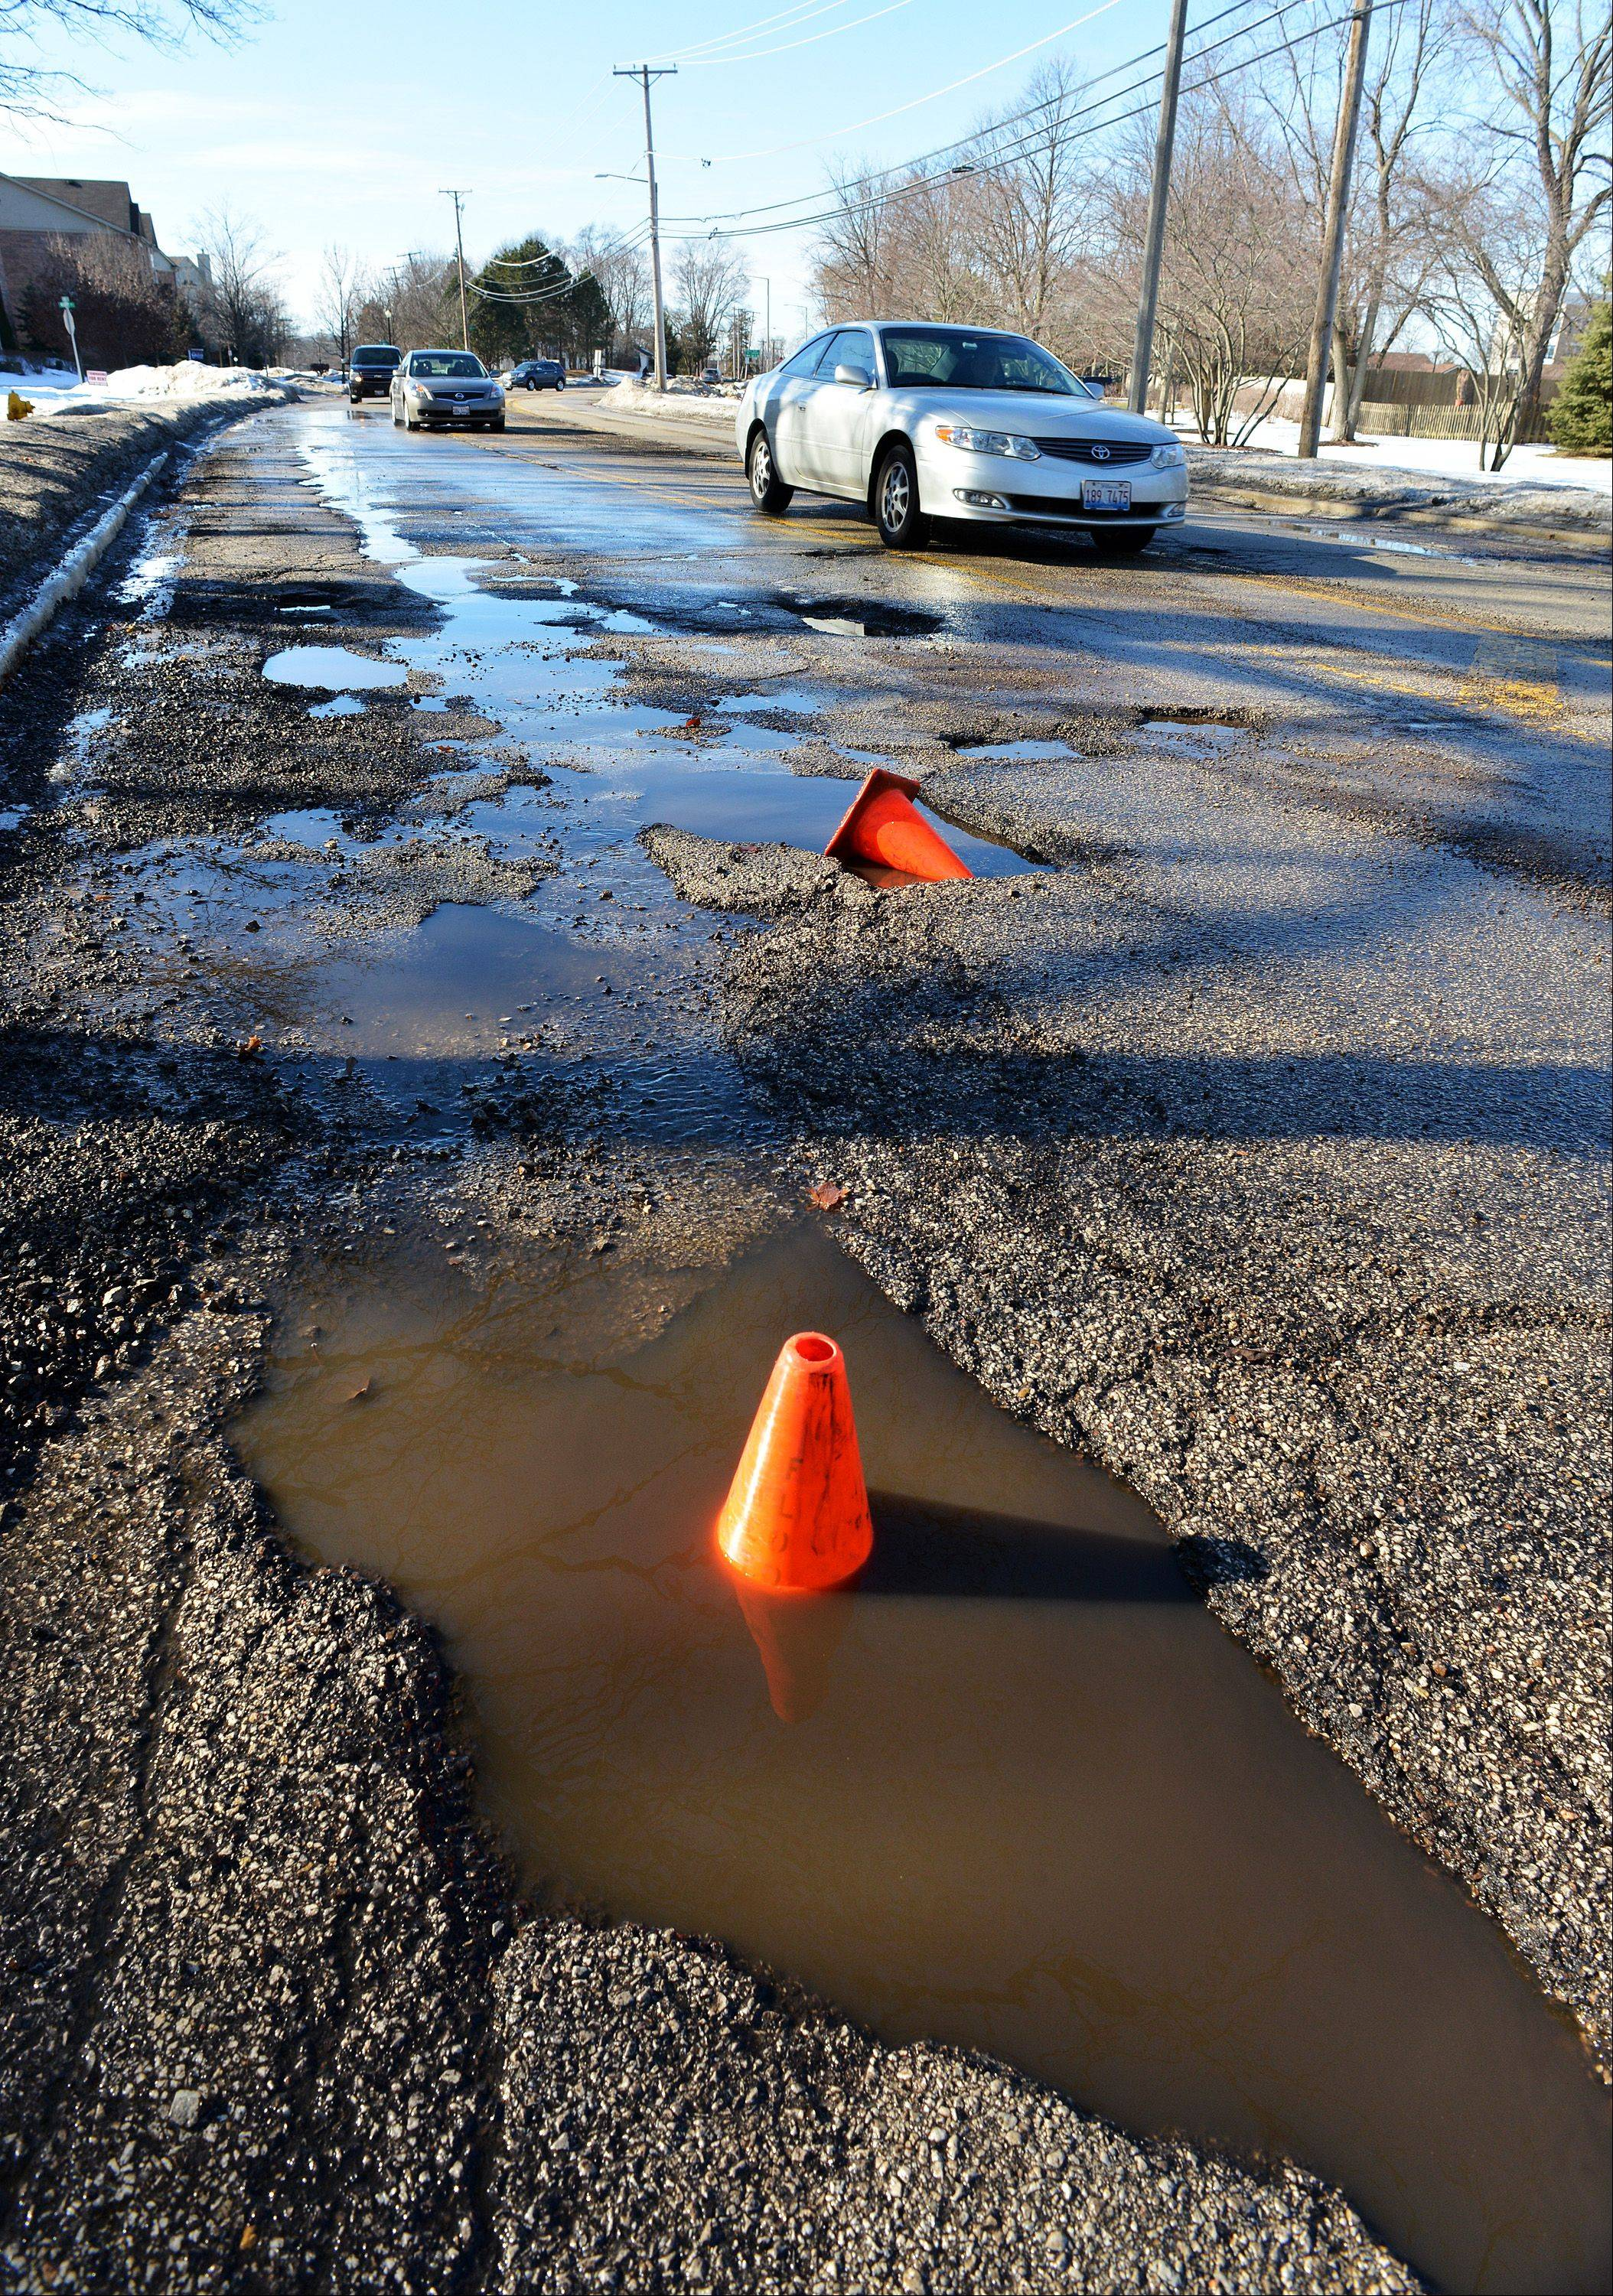 Is it a pothole or just a puddle? Many potholes in Winfield are filled with water so it is hard to tell. These water-filled potholes on Jewell Road near Central DuPage Hospital are so bad they have warning cones to alert drivers, many of which were crossing over into oncoming traffic to get around them.